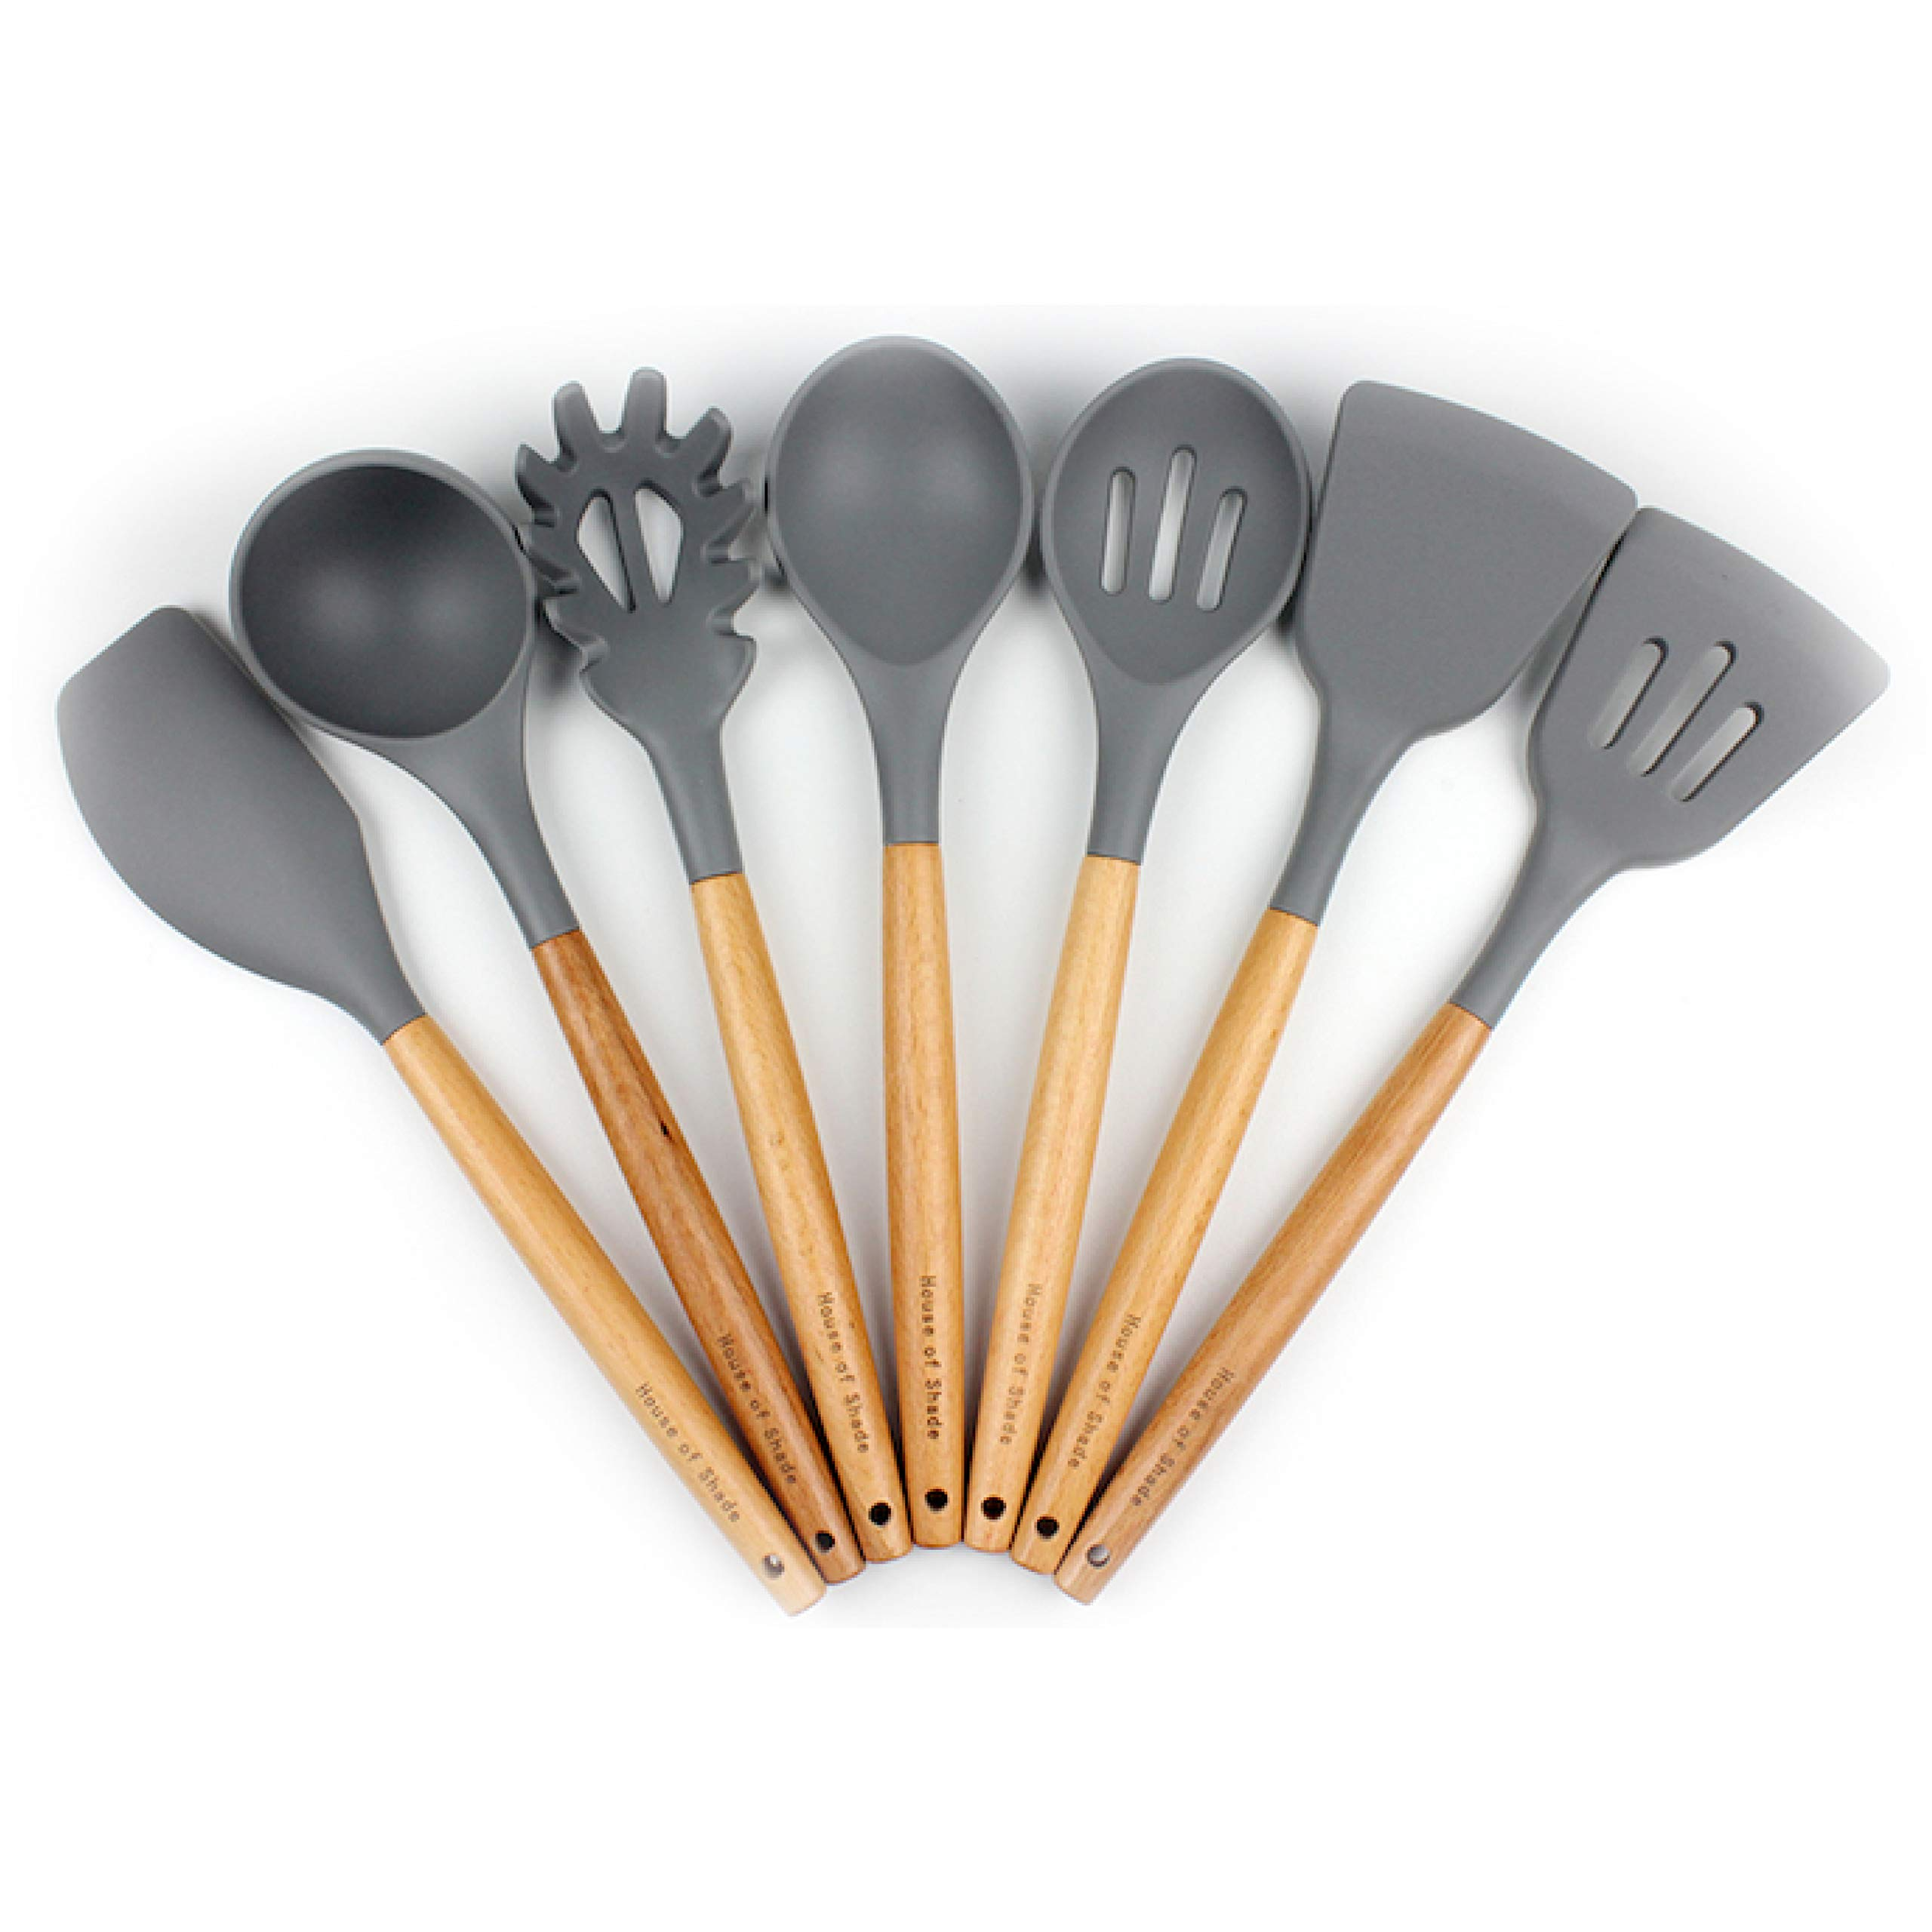 Silicone Kitchen Utensil Set by House of Shade - Natural Beechwood Handles with BPA Free Grey Heads - 7 Piece Nonstick and Heat Resistant Tools - Comfortable Wood Grip for Cooking and Mixing